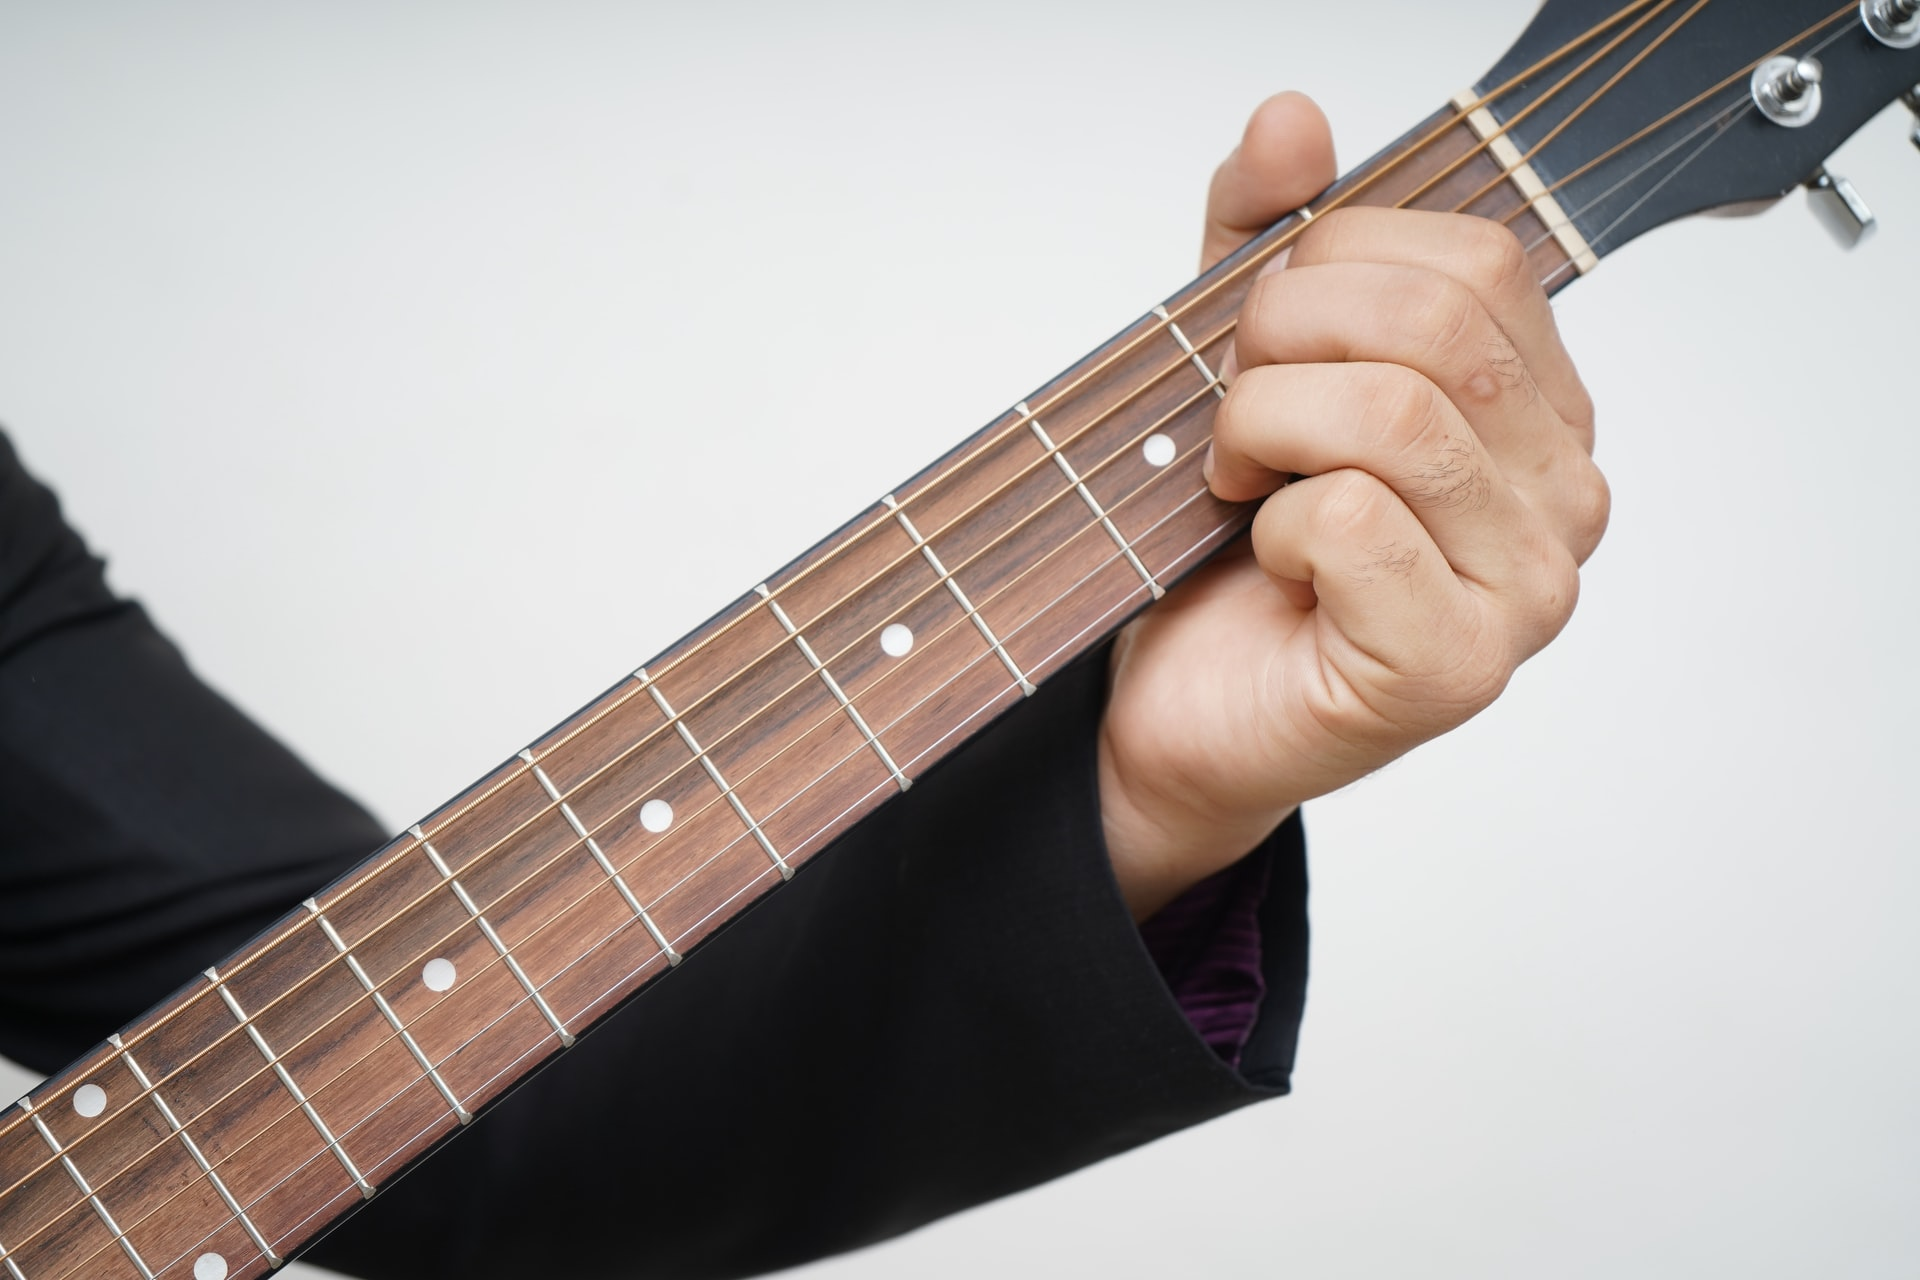 Rock Guitar Chords – Uses Open and Closed Power Chords